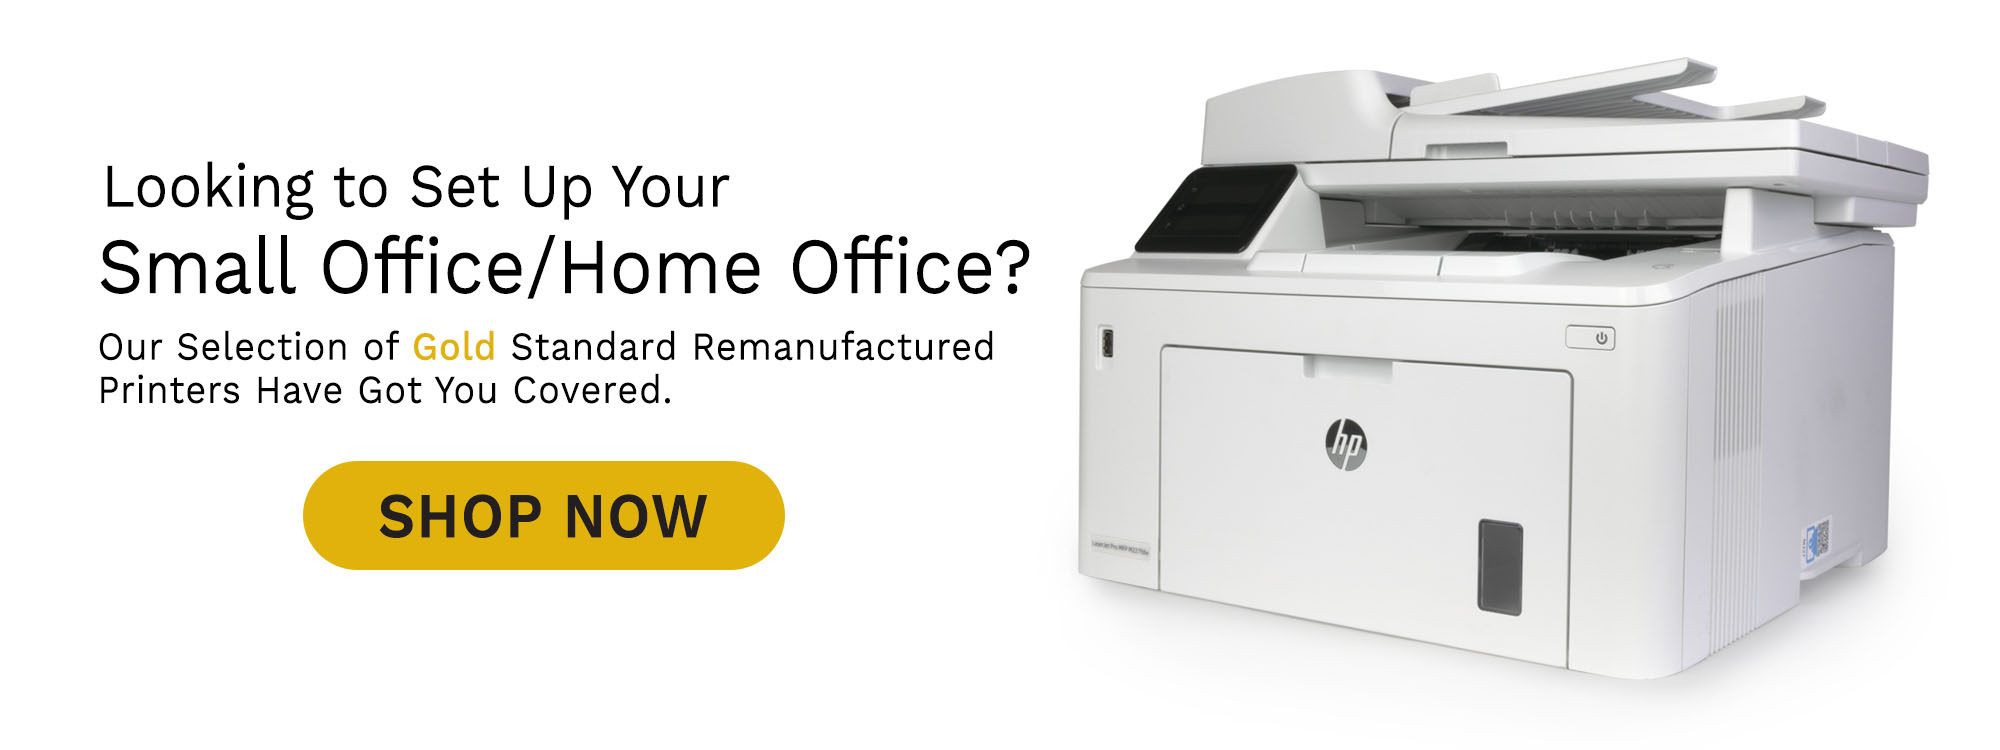 Small Office Home Office Printers - Shop Now